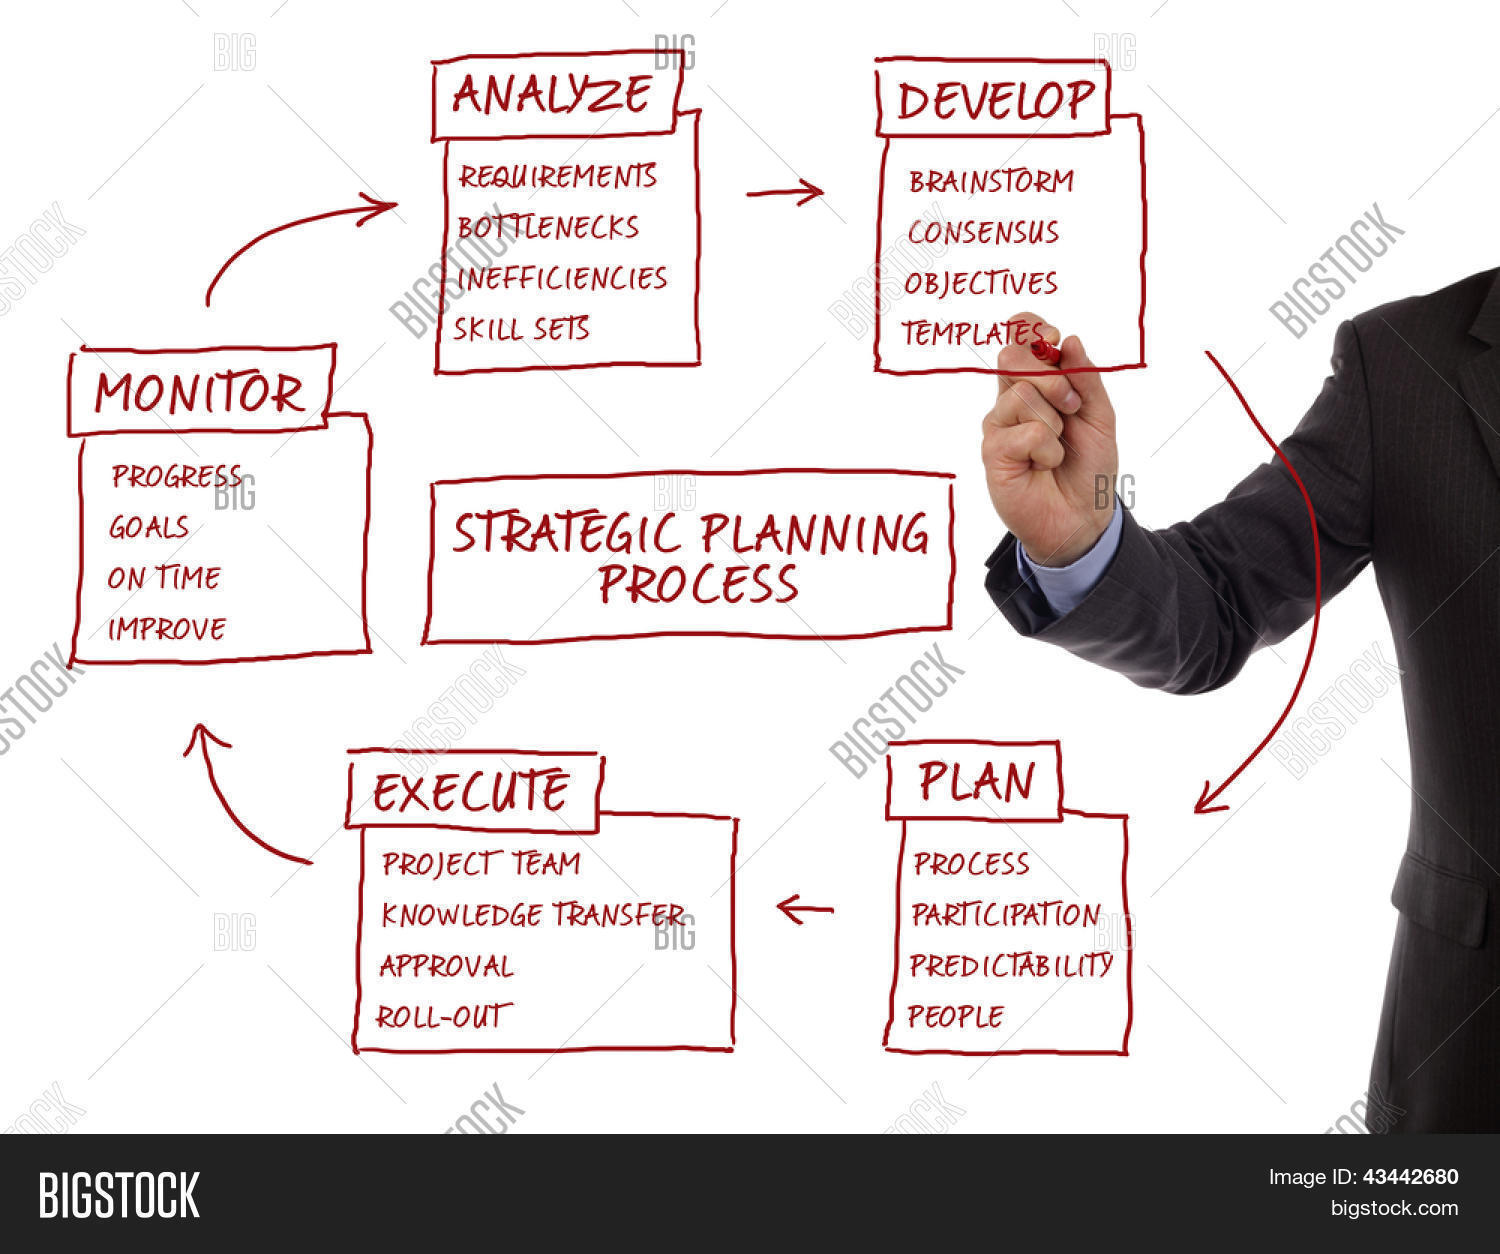 strategy management planning process flow chart showing key    strategy management planning process flow chart showing key business terms analyze  develop  plan